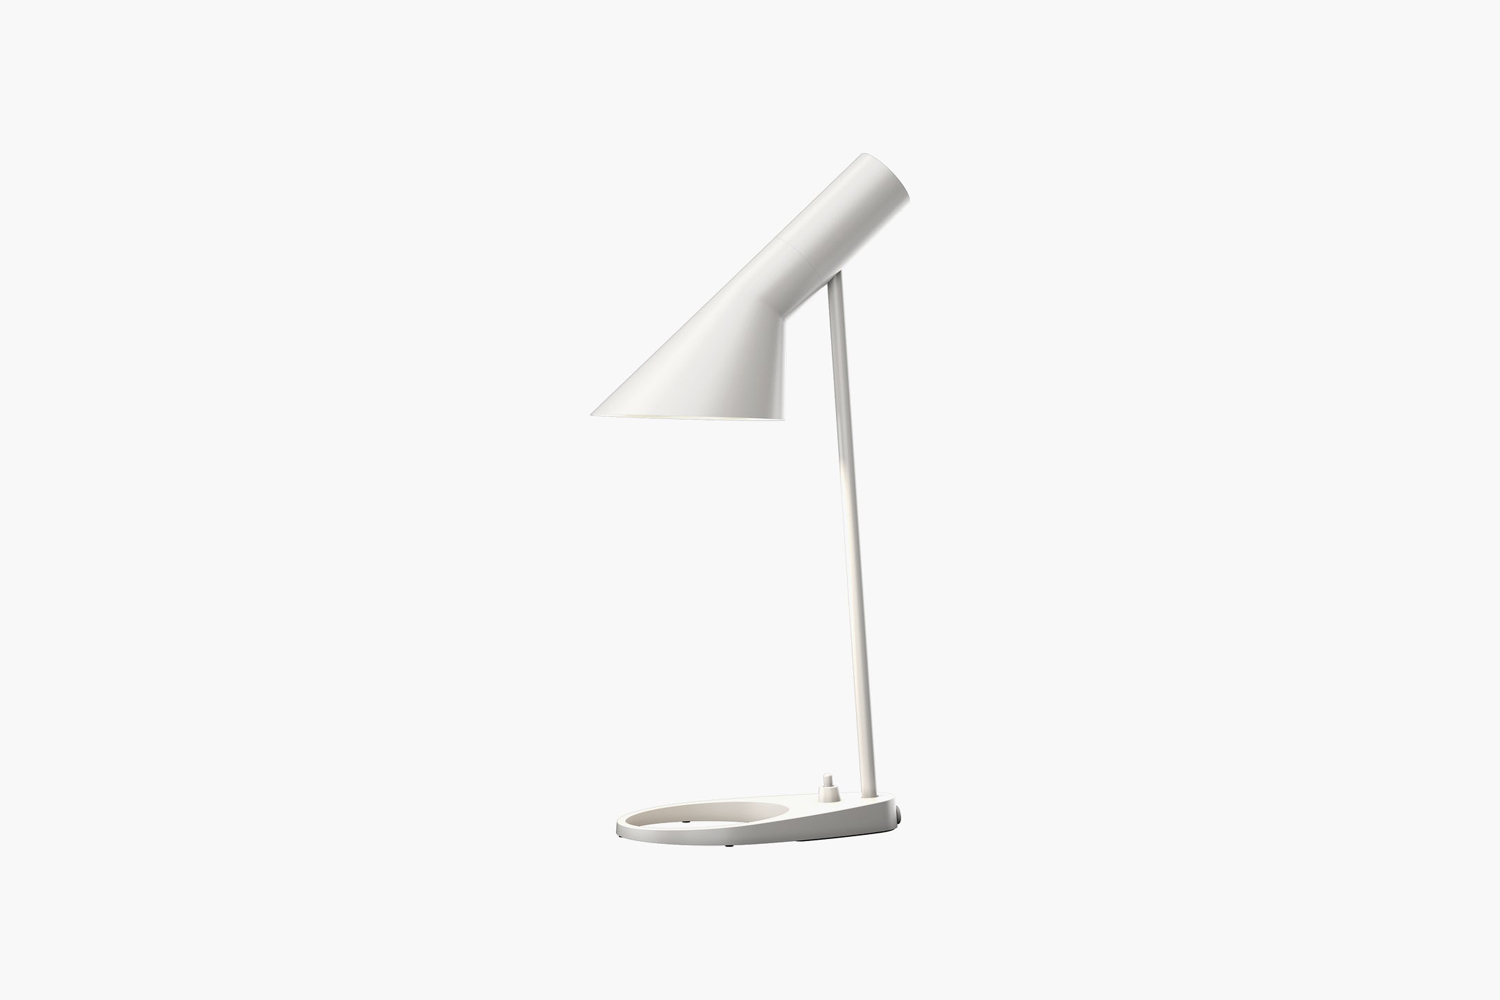 Designed by Arne Jacobsen, the AJ Table Lamp, shown in white, is $876 at Design Within Reach.